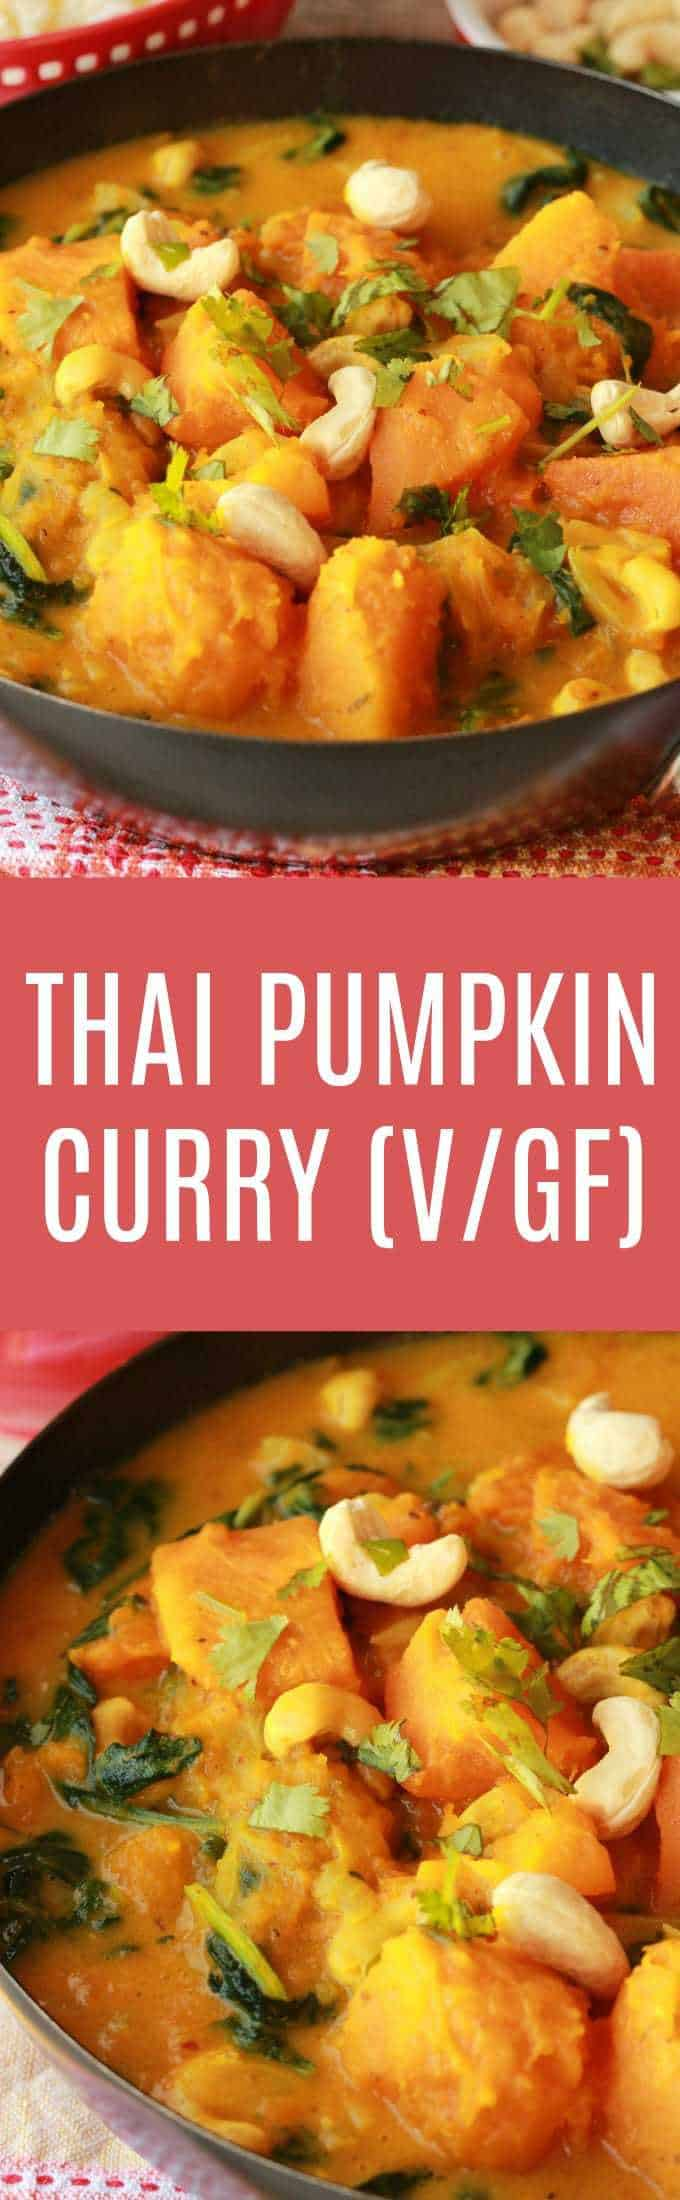 Hearty and satisfying Thai inspired pumpkin curry! This easy 10-ingredient recipe (including the rice!) is ready in less than 45 minutes and makes a fabulously delicious dinner. Vegan | Vegan Dinner | Vegan Entree | Savory | Gluten Free  #vegan #pumpkincurry #vegandinner #glutenfree | lovingitvegan.com